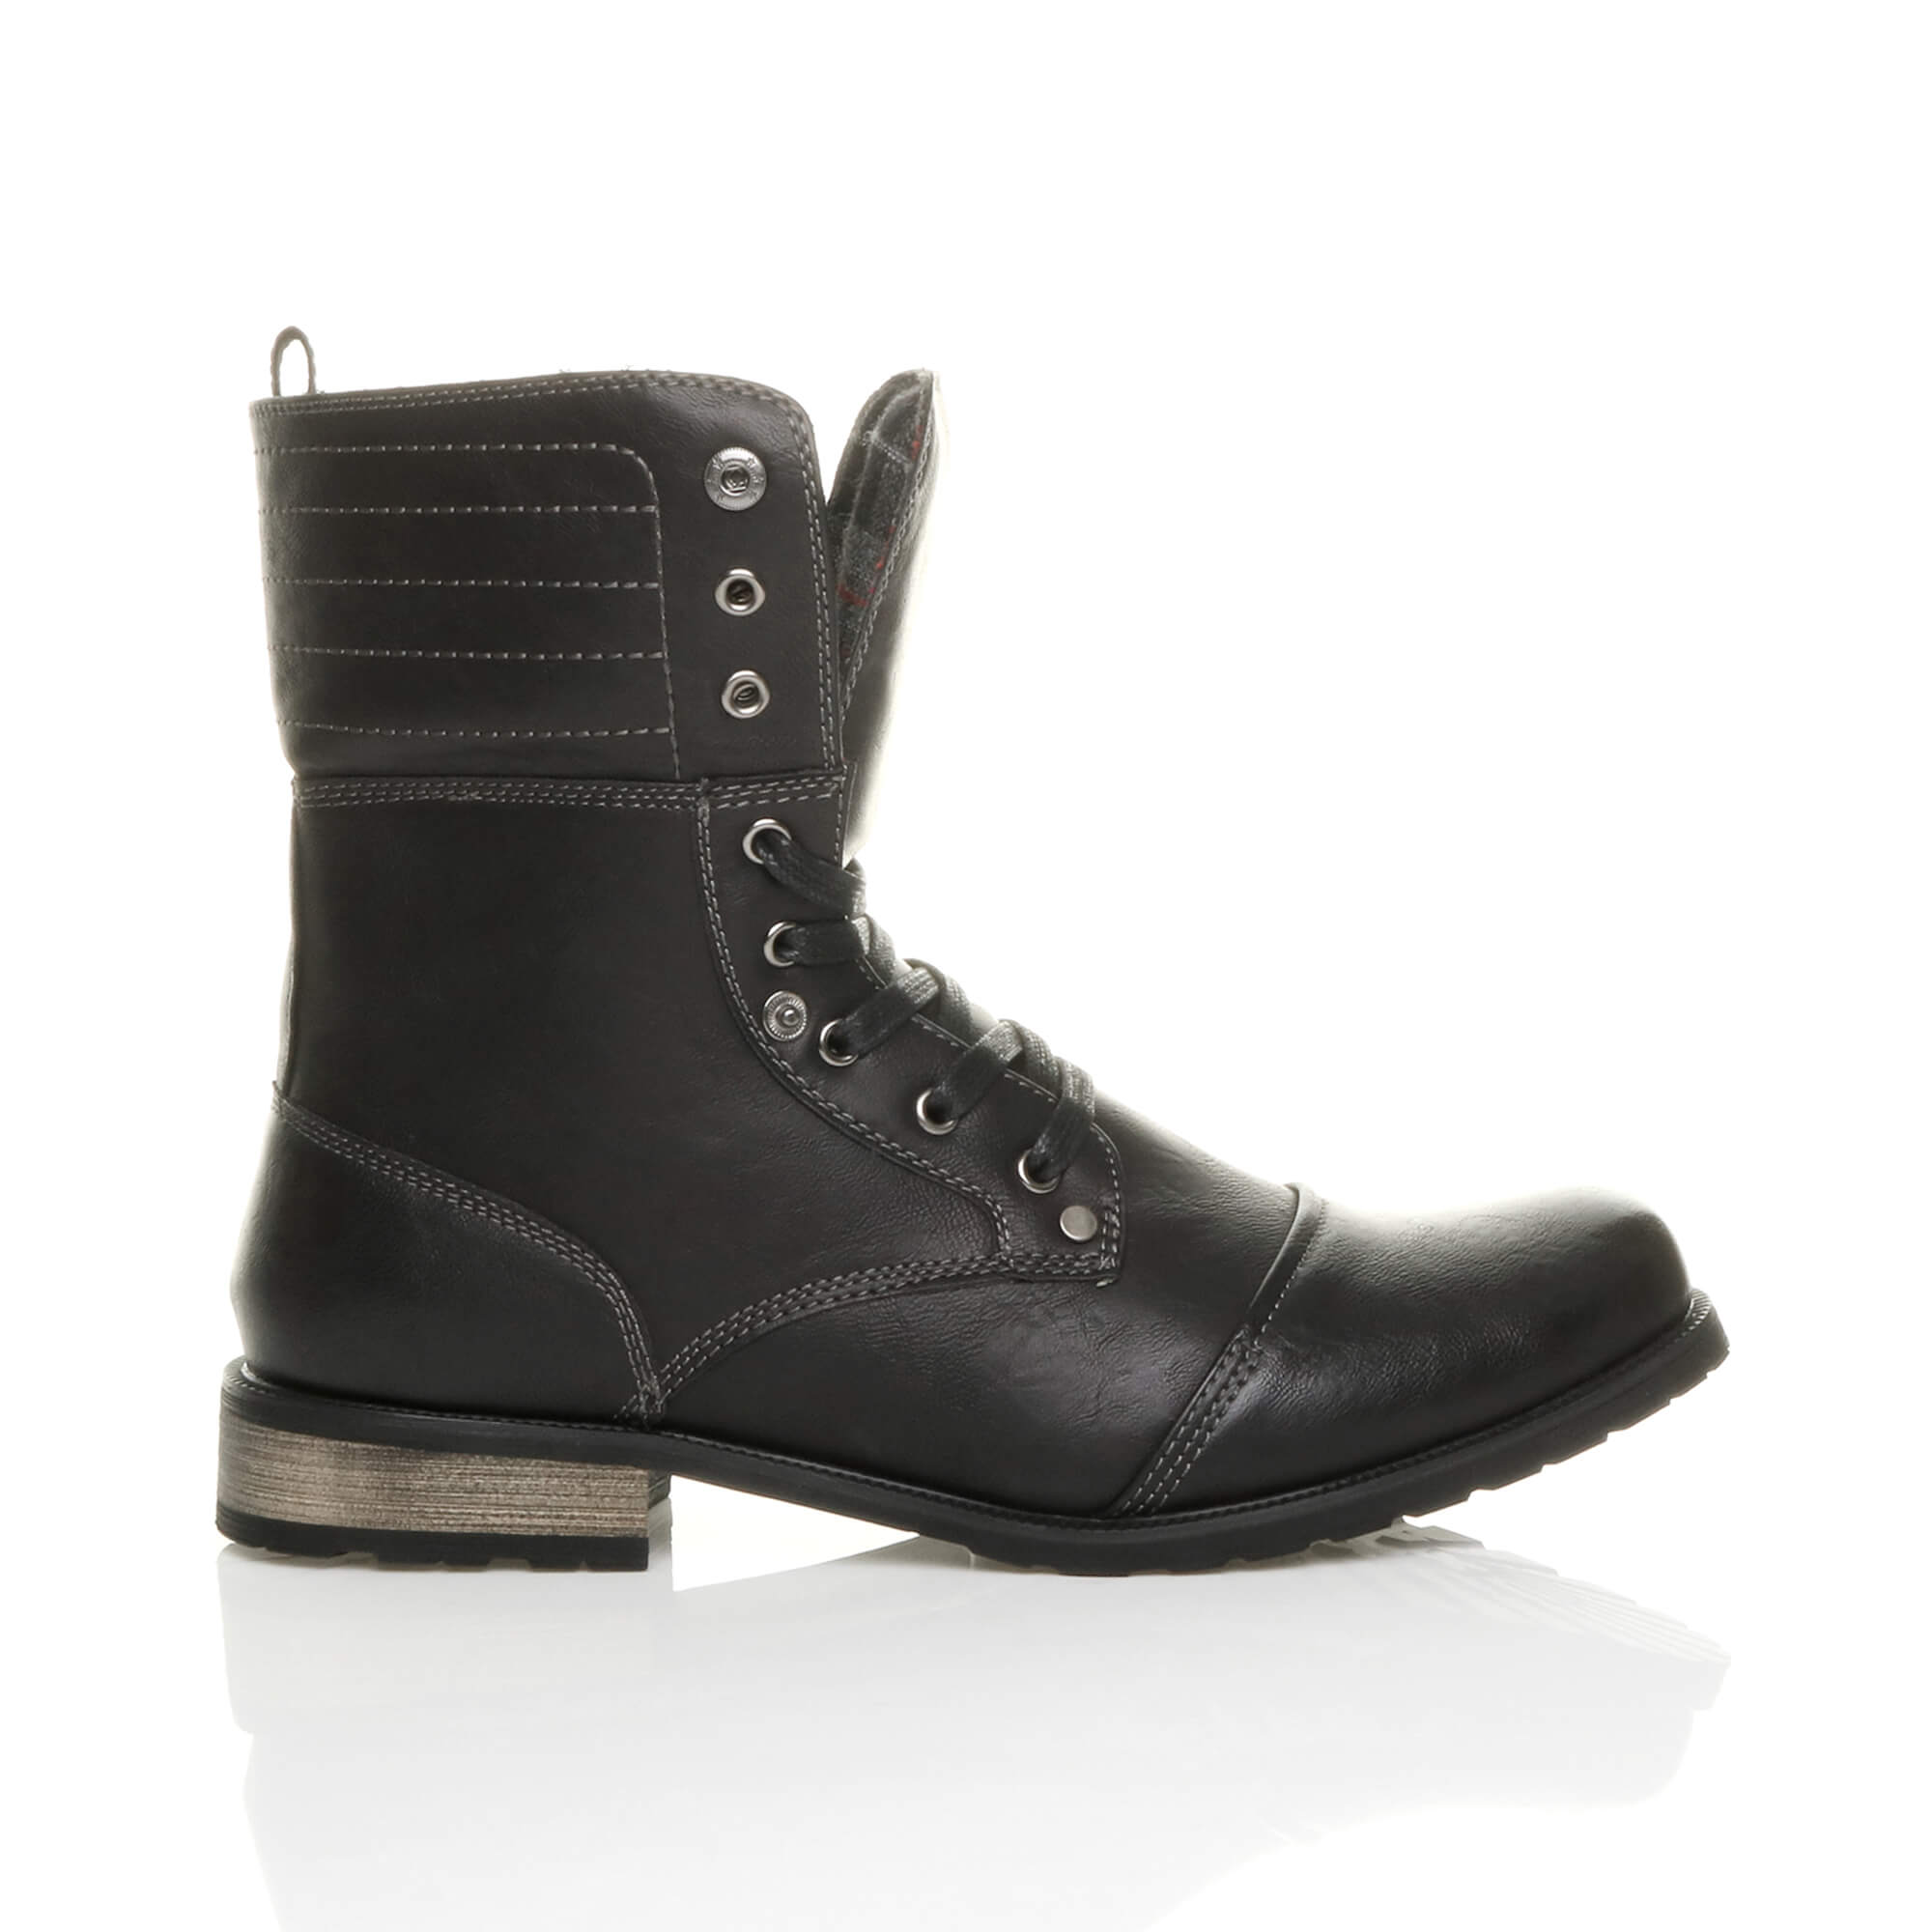 Mens-lace-up-low-heel-flat-fold-over-padded-cuff-military-ankle-boots-size miniatuur 3